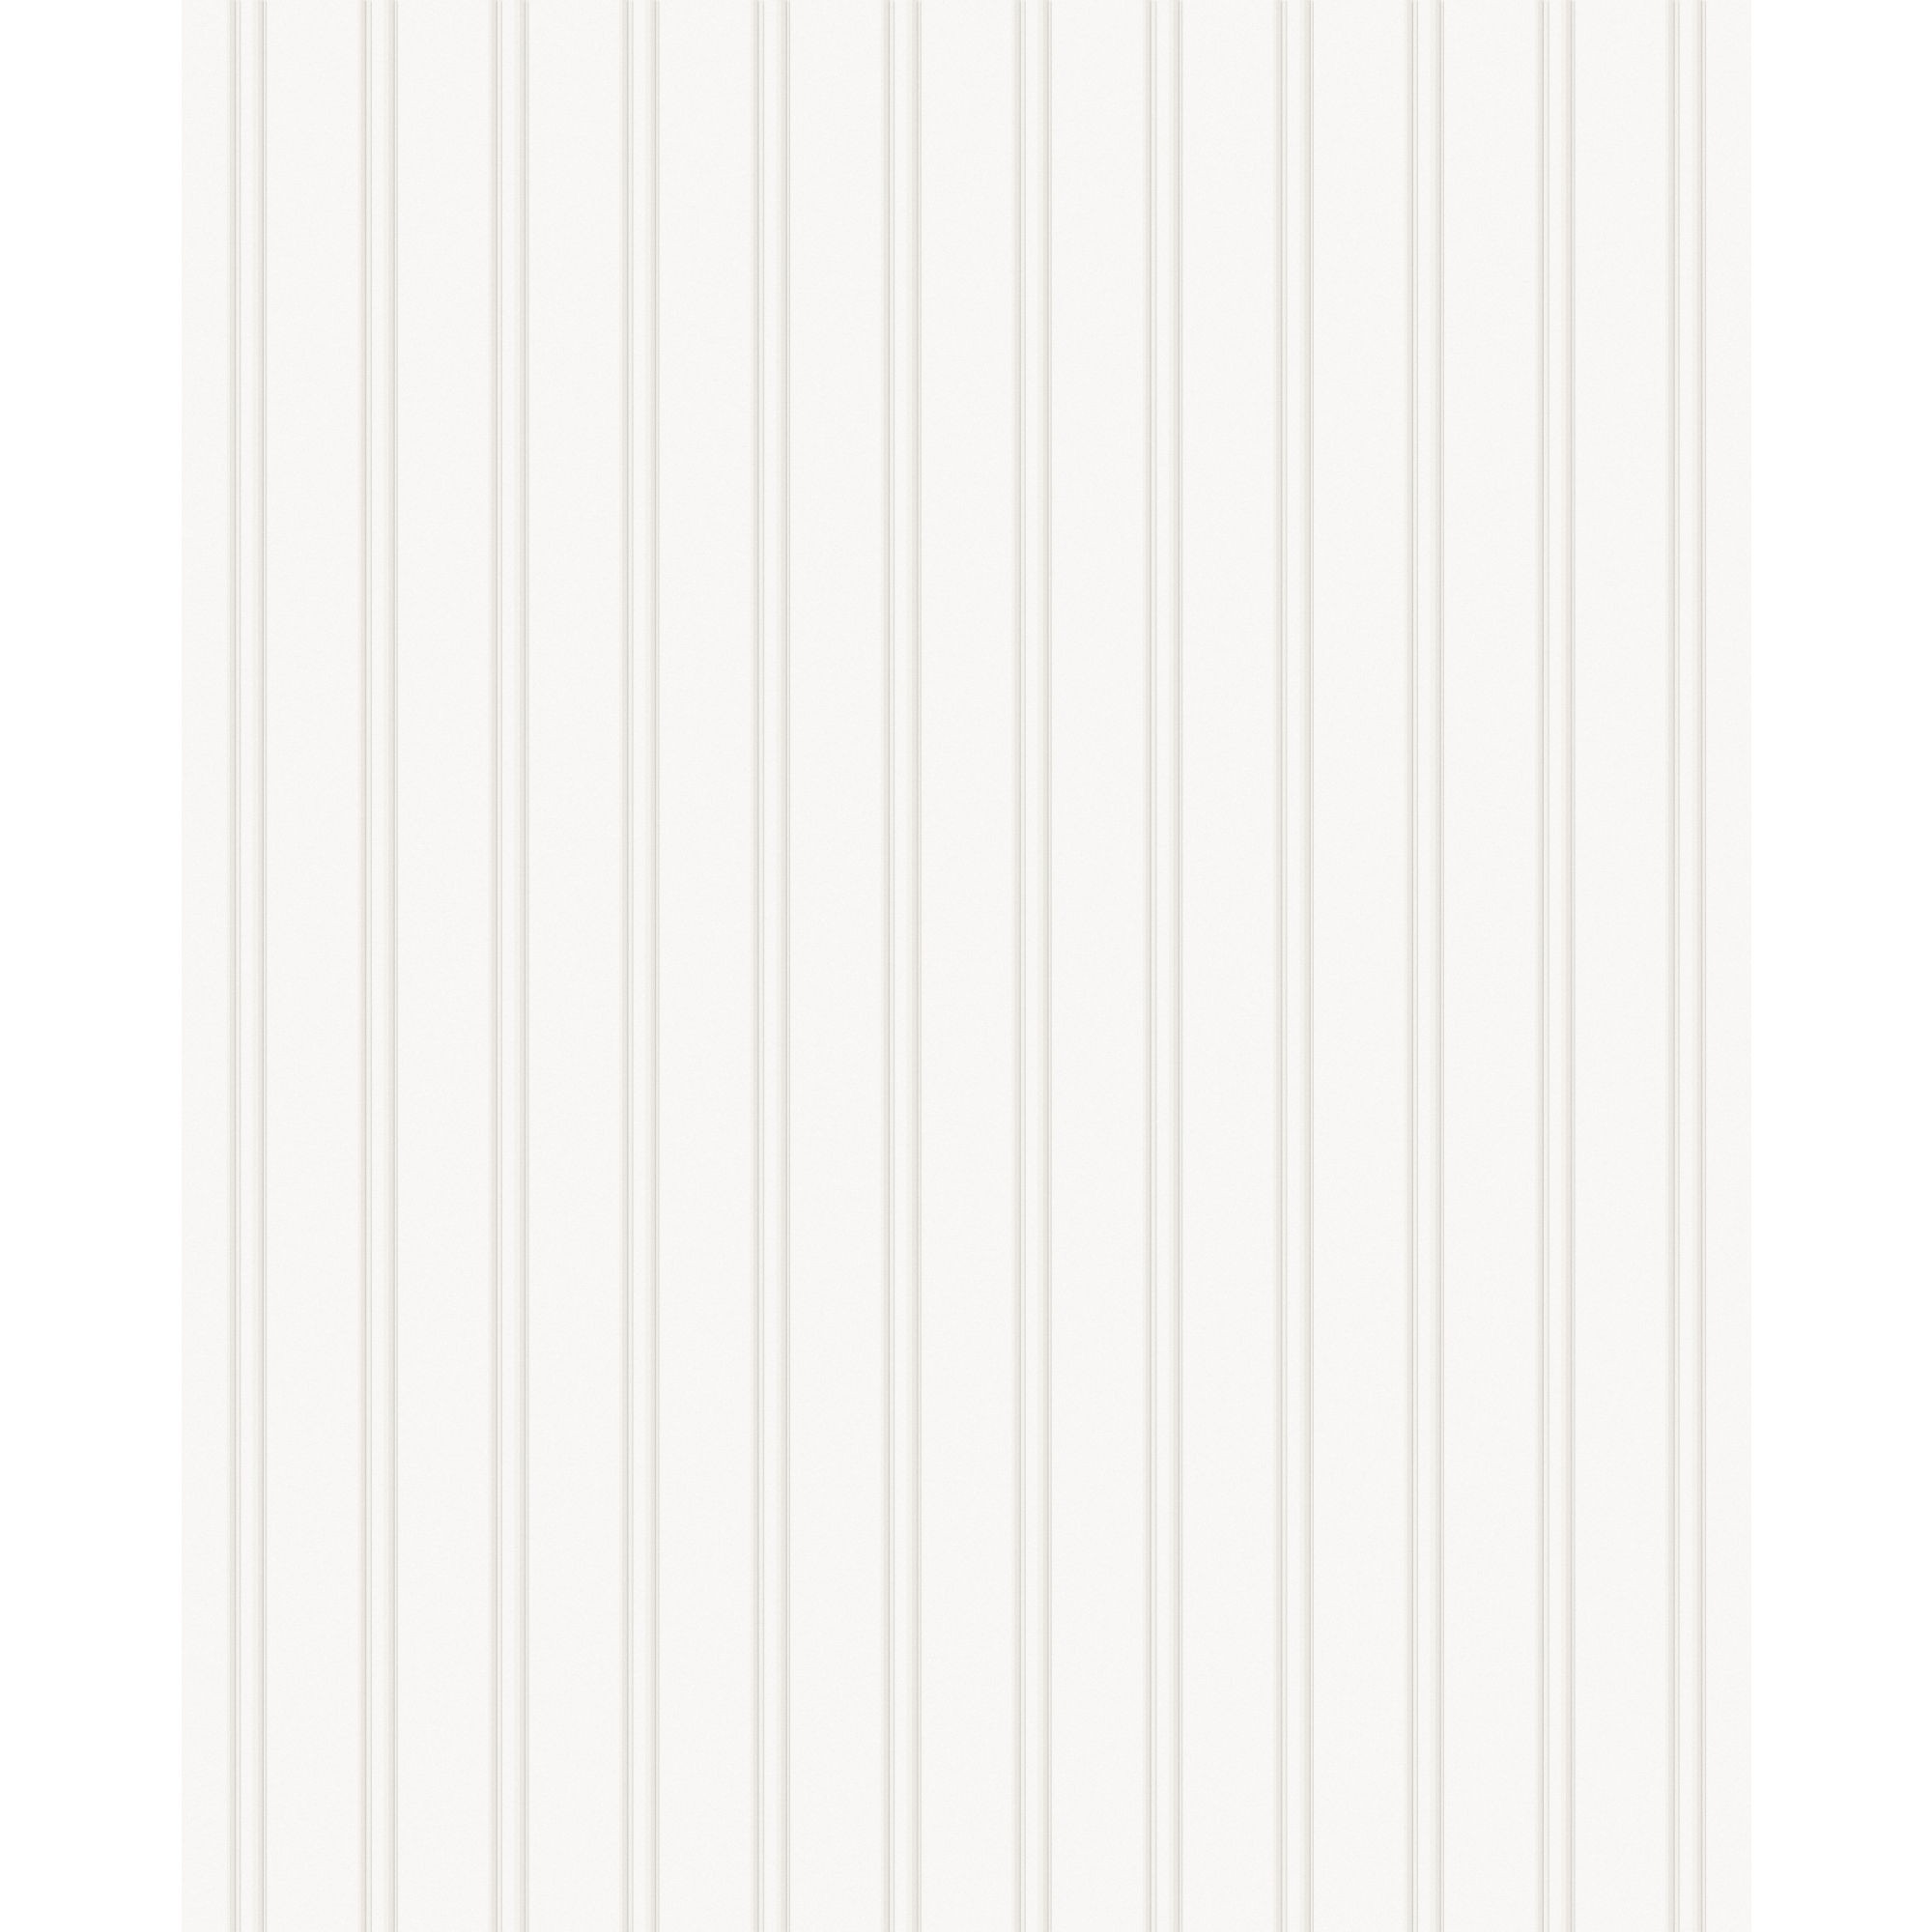 Paintable Prepasted Paintable Beadboard Wallpaper in White   15274 2000x2000